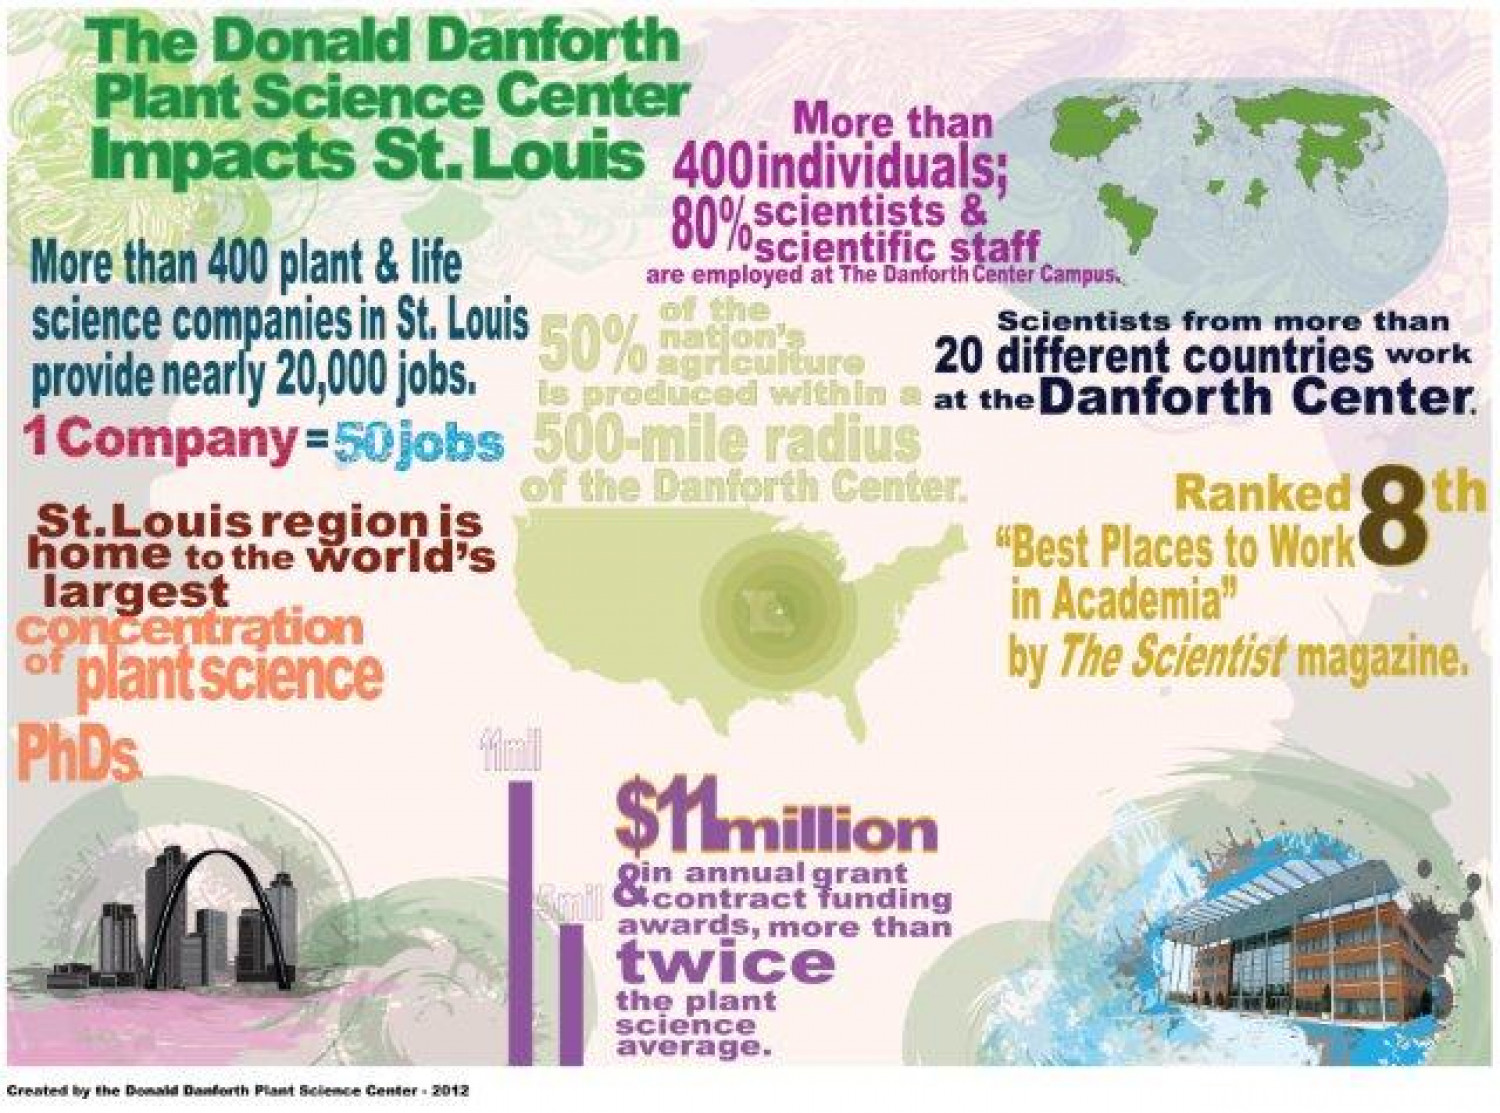 Learn how the Danforth Center Impacts St. Louis Infographic